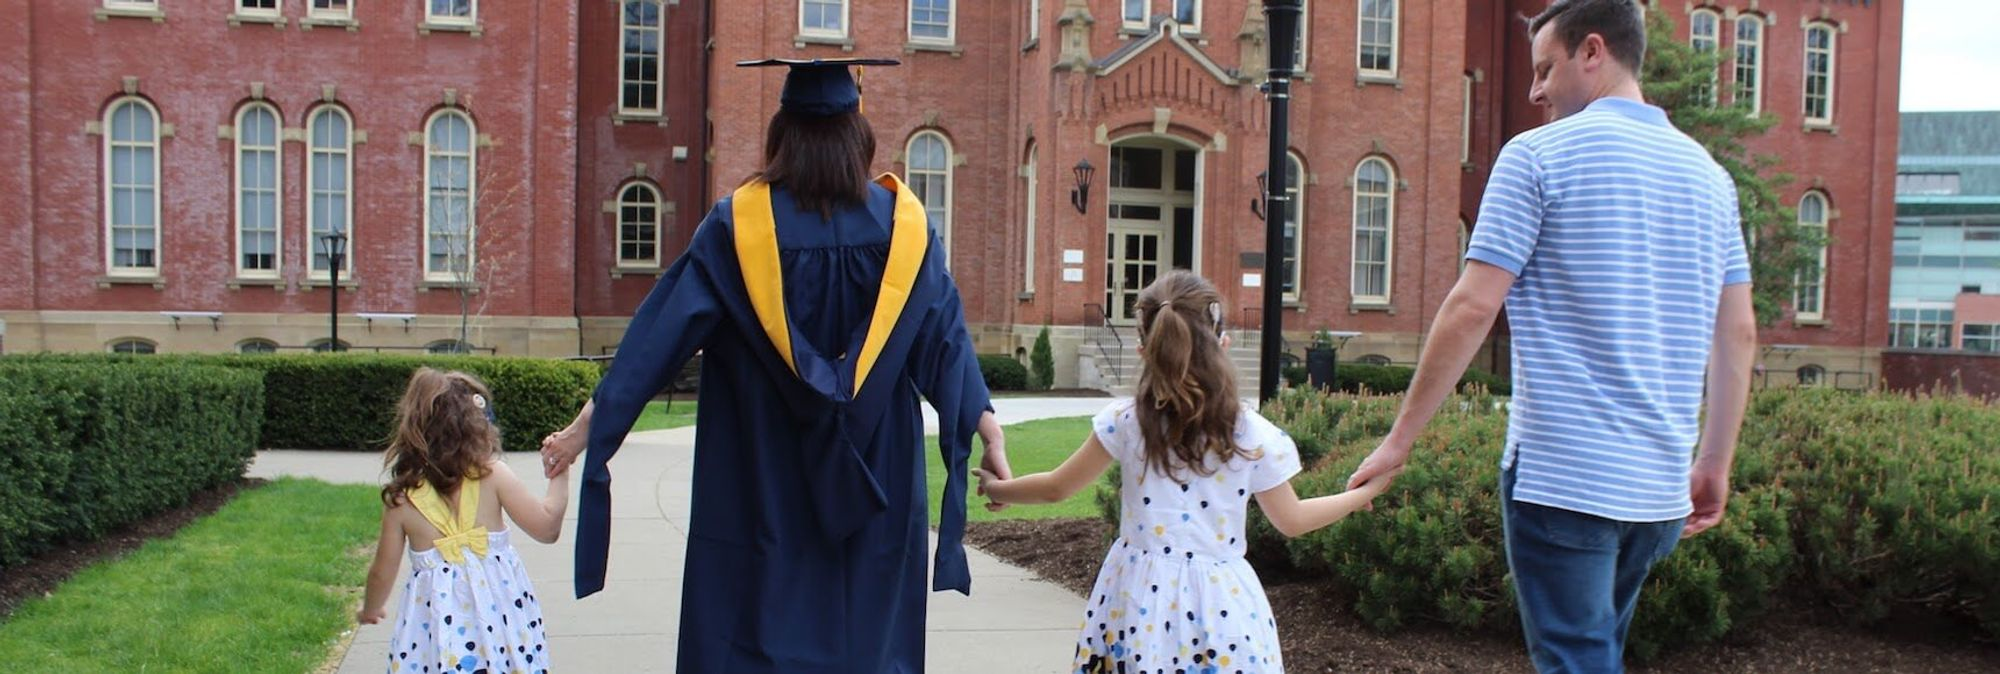 WVU family walking holding hands